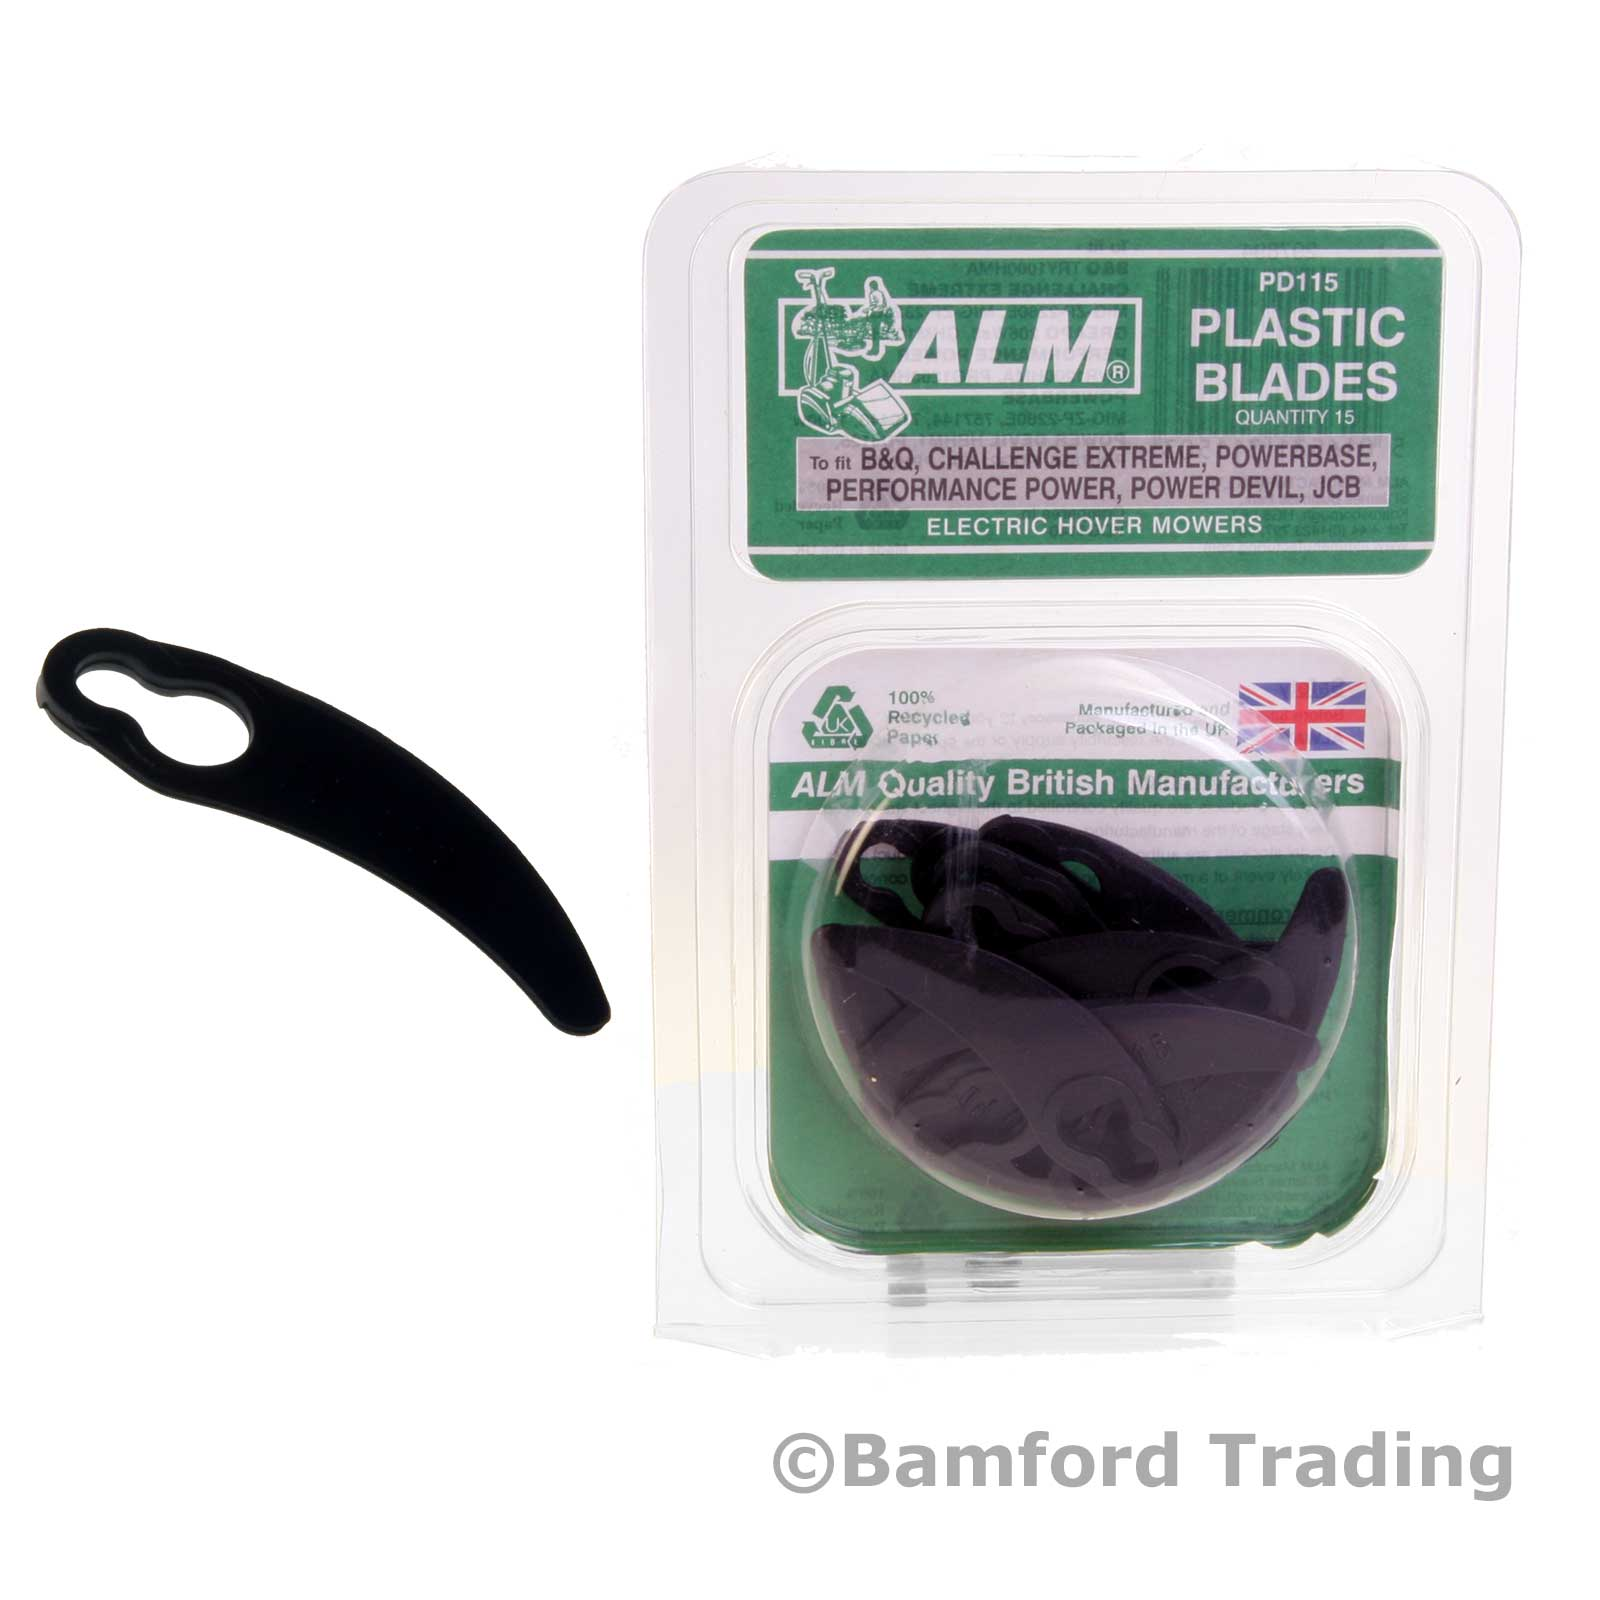 Fingerless gloves asda - Cutter Blades For To Fit Asda Xceed 1000w Electric Hover Mowers